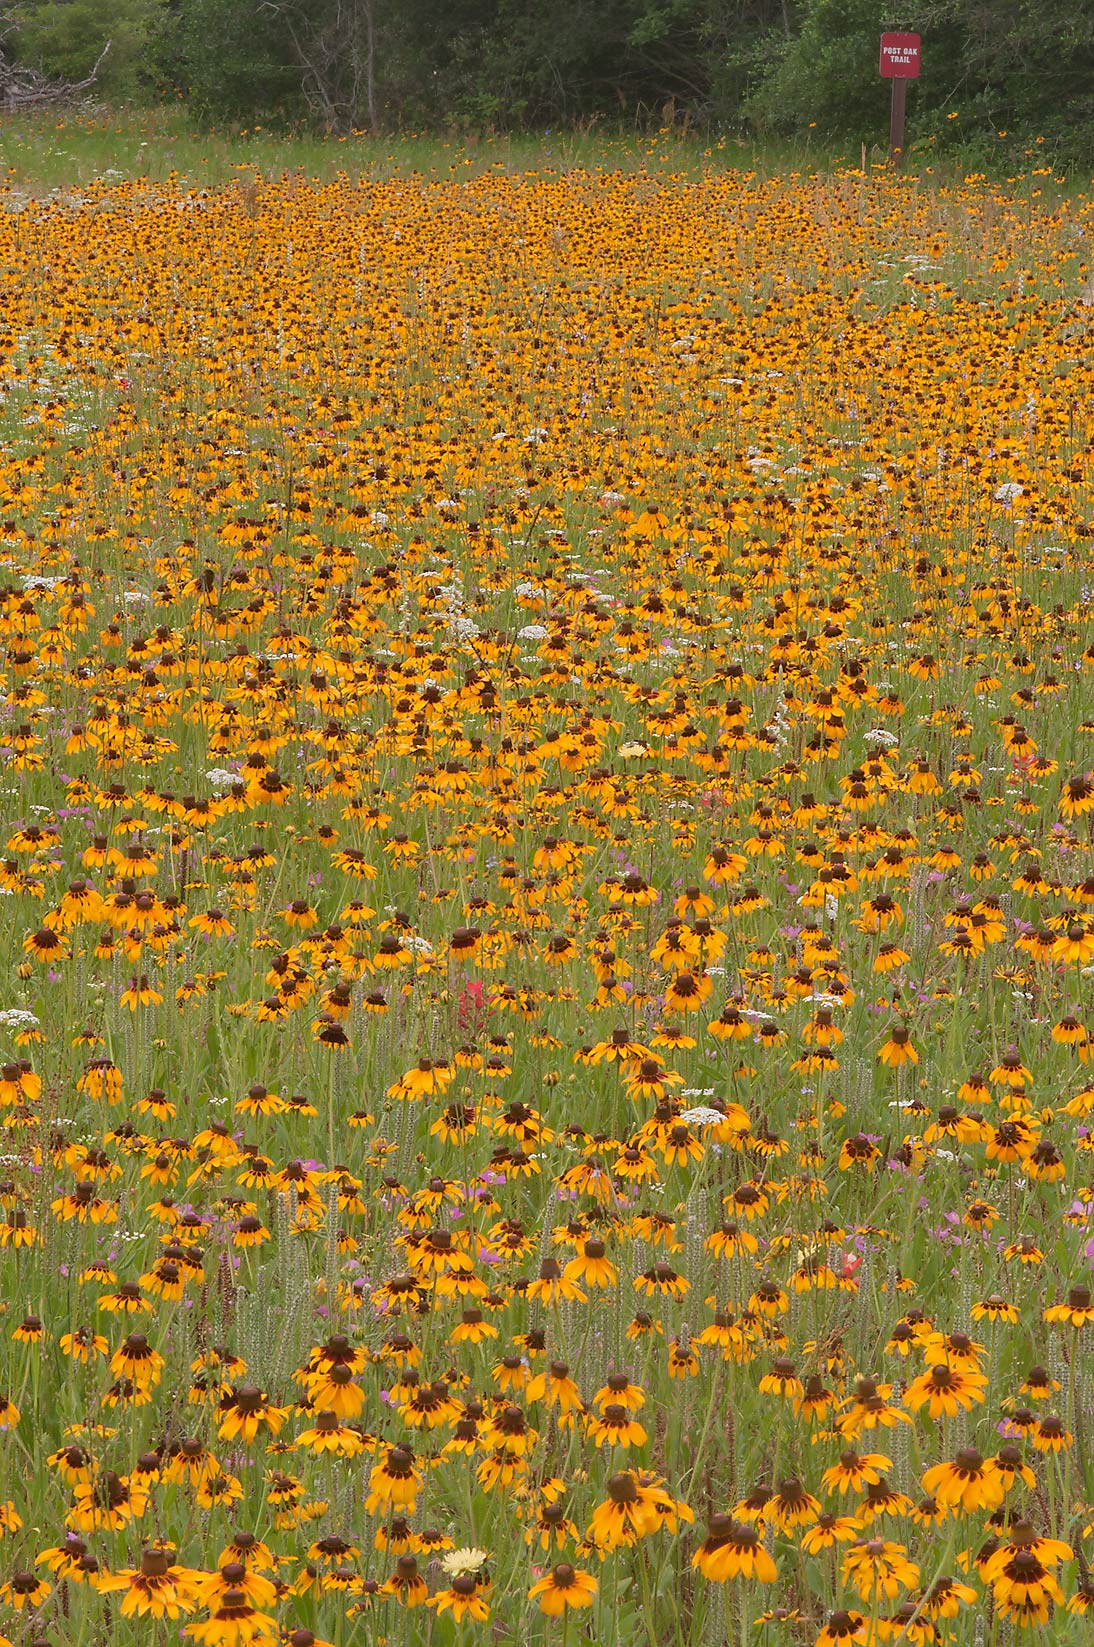 Field of Black eyed susan near Post Oak Trail in Lick Creek Park. College Station, Texas